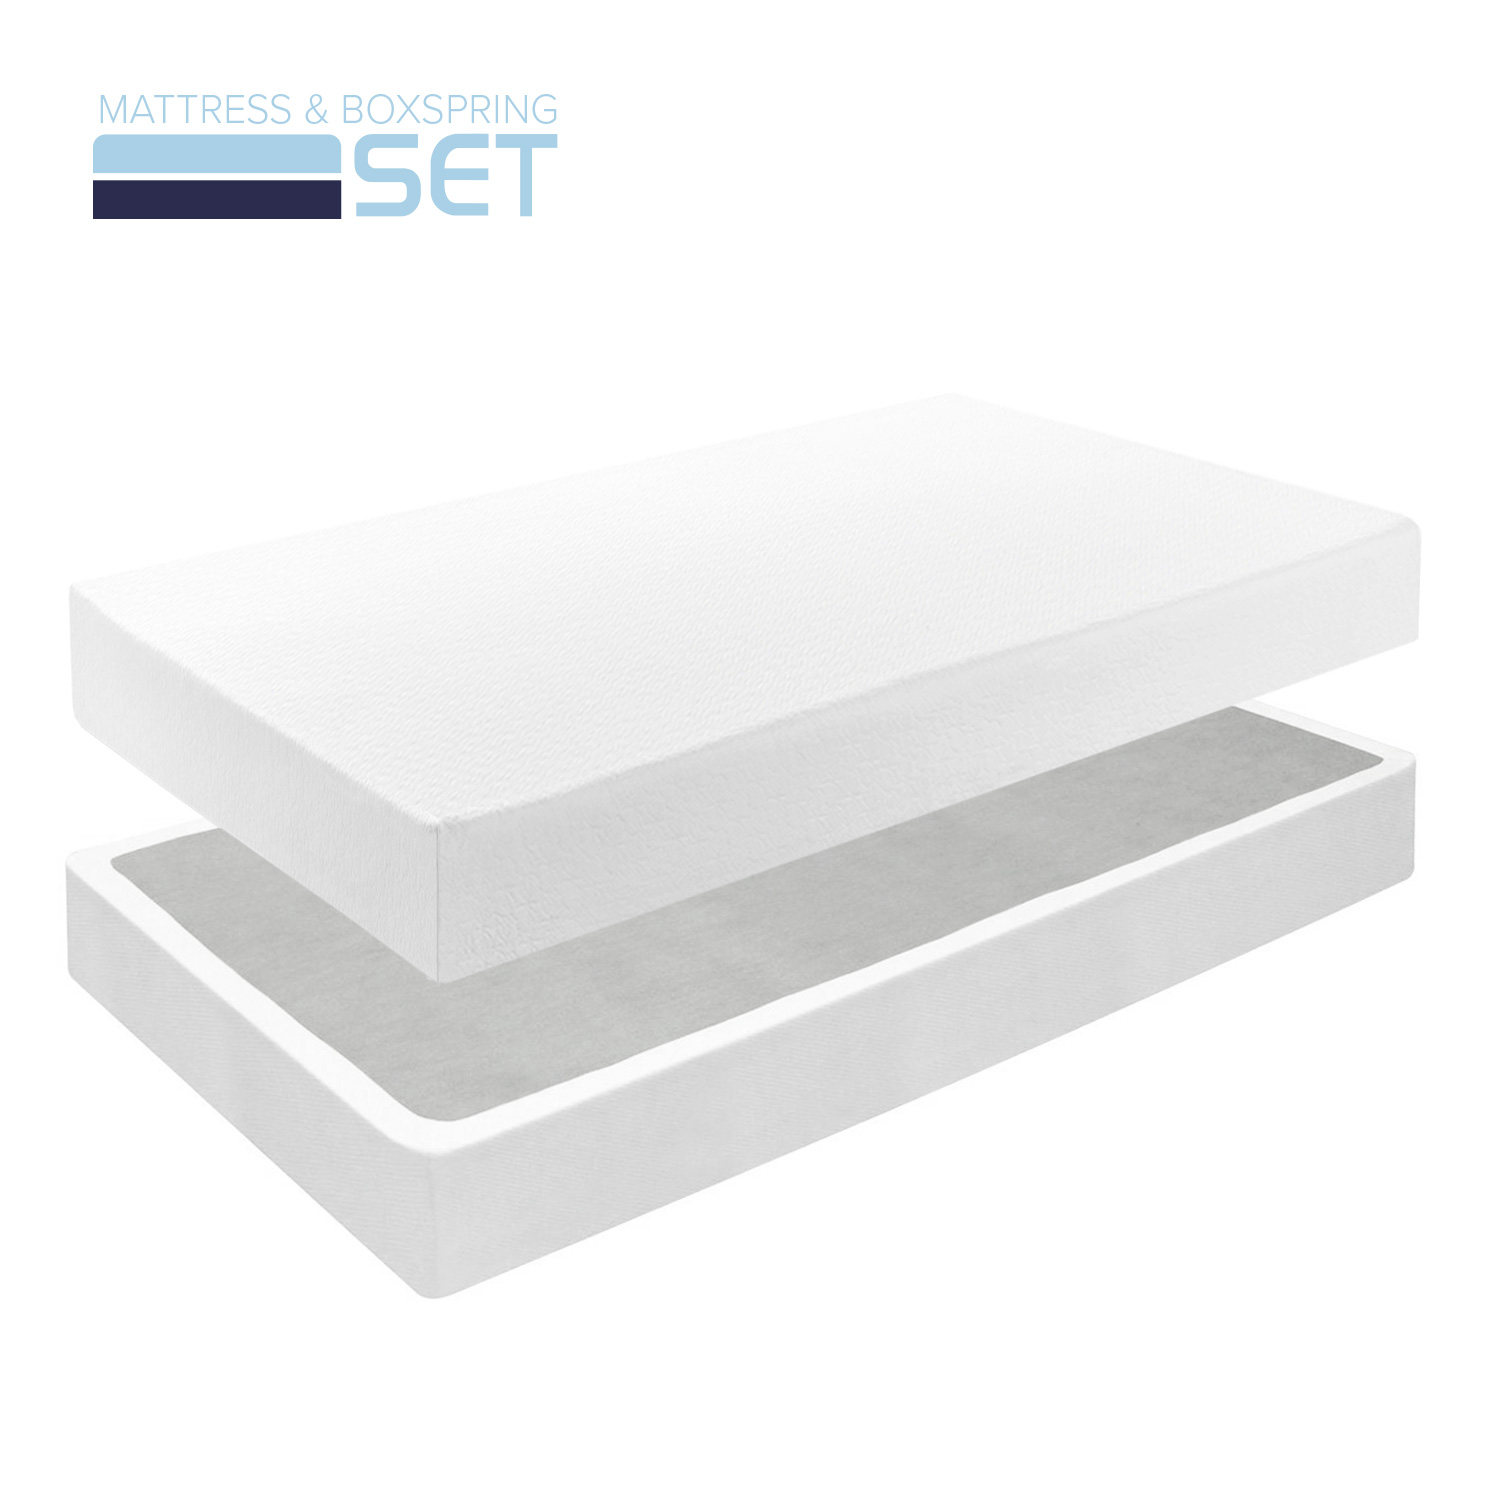 Best Memory Foam Mattress 8 Inch Free Shipping Bed in a Box